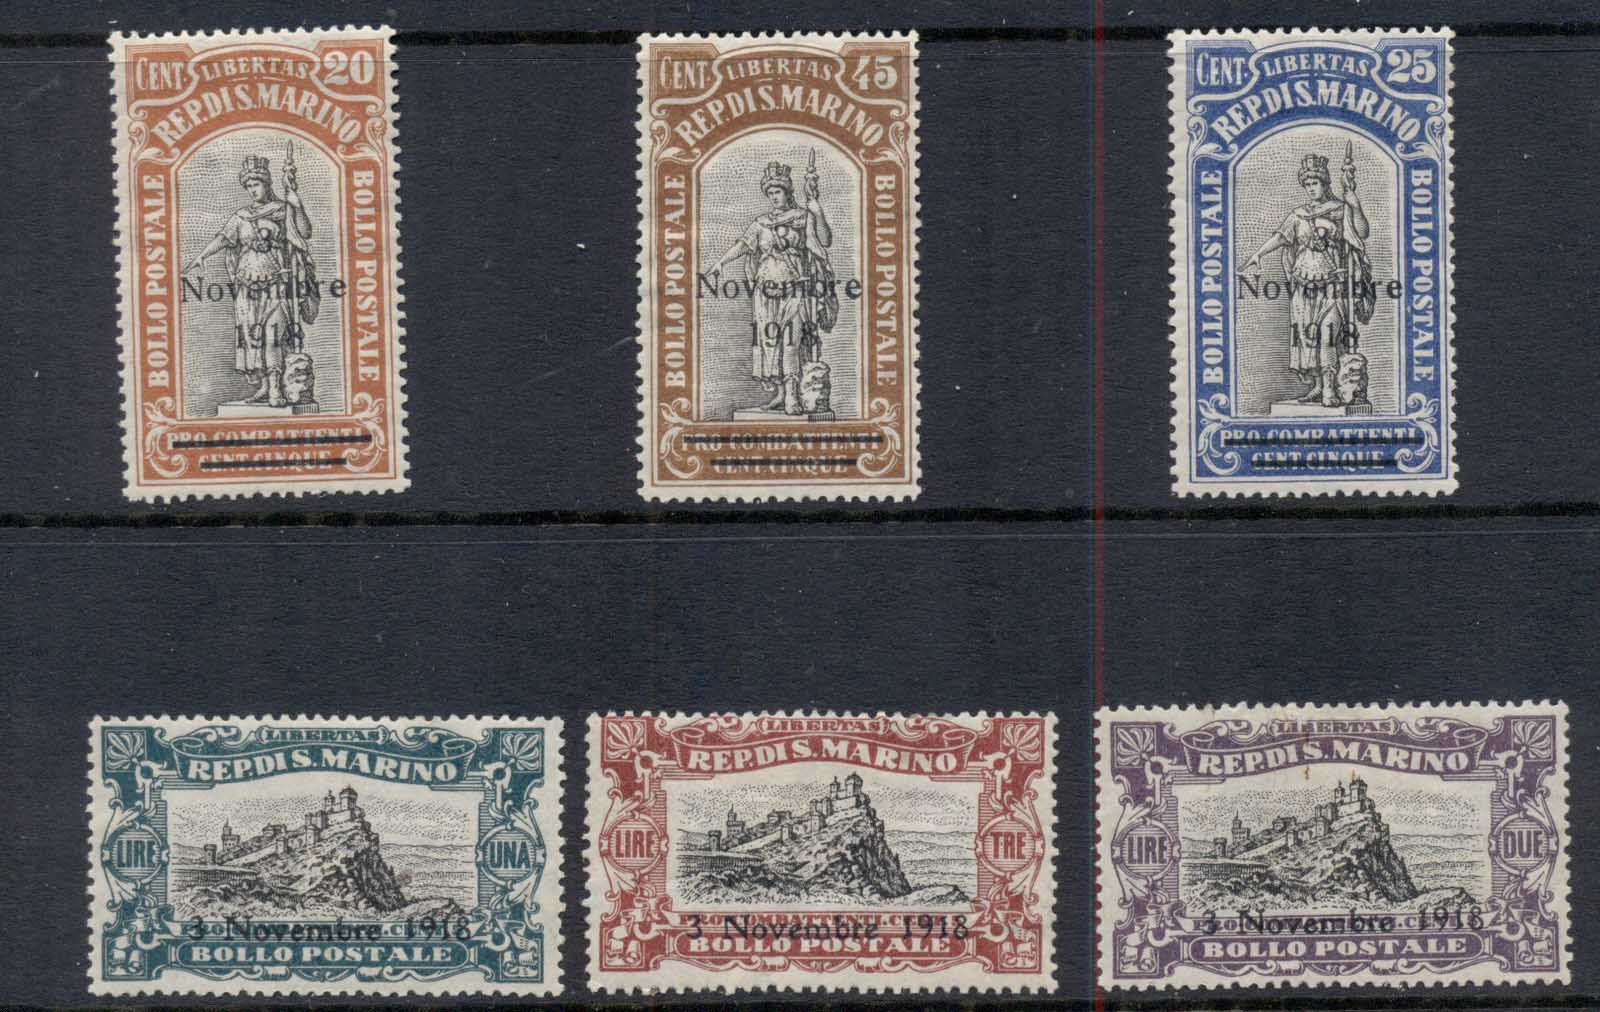 San Marino 1918 Overprints to celebrate Italian Victory over Austria MLH